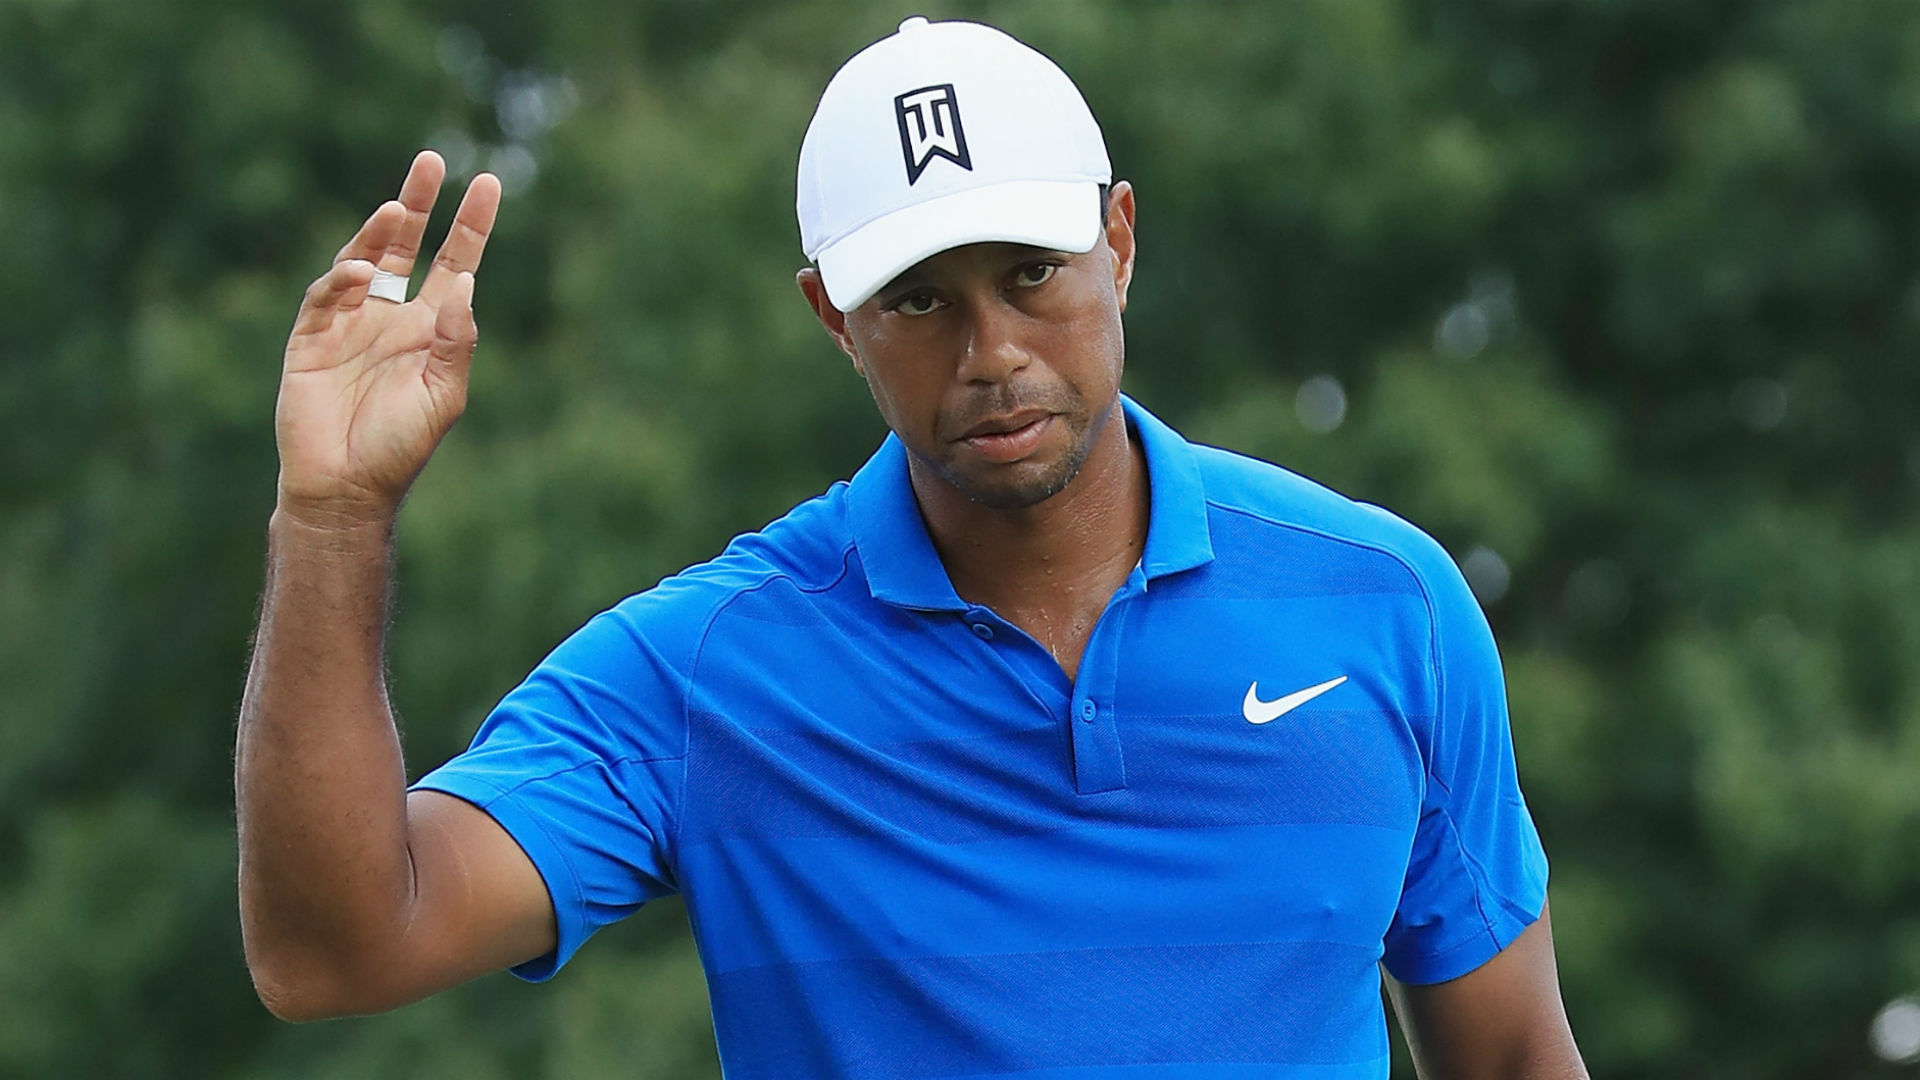 Woods a winner again for first time since 2013